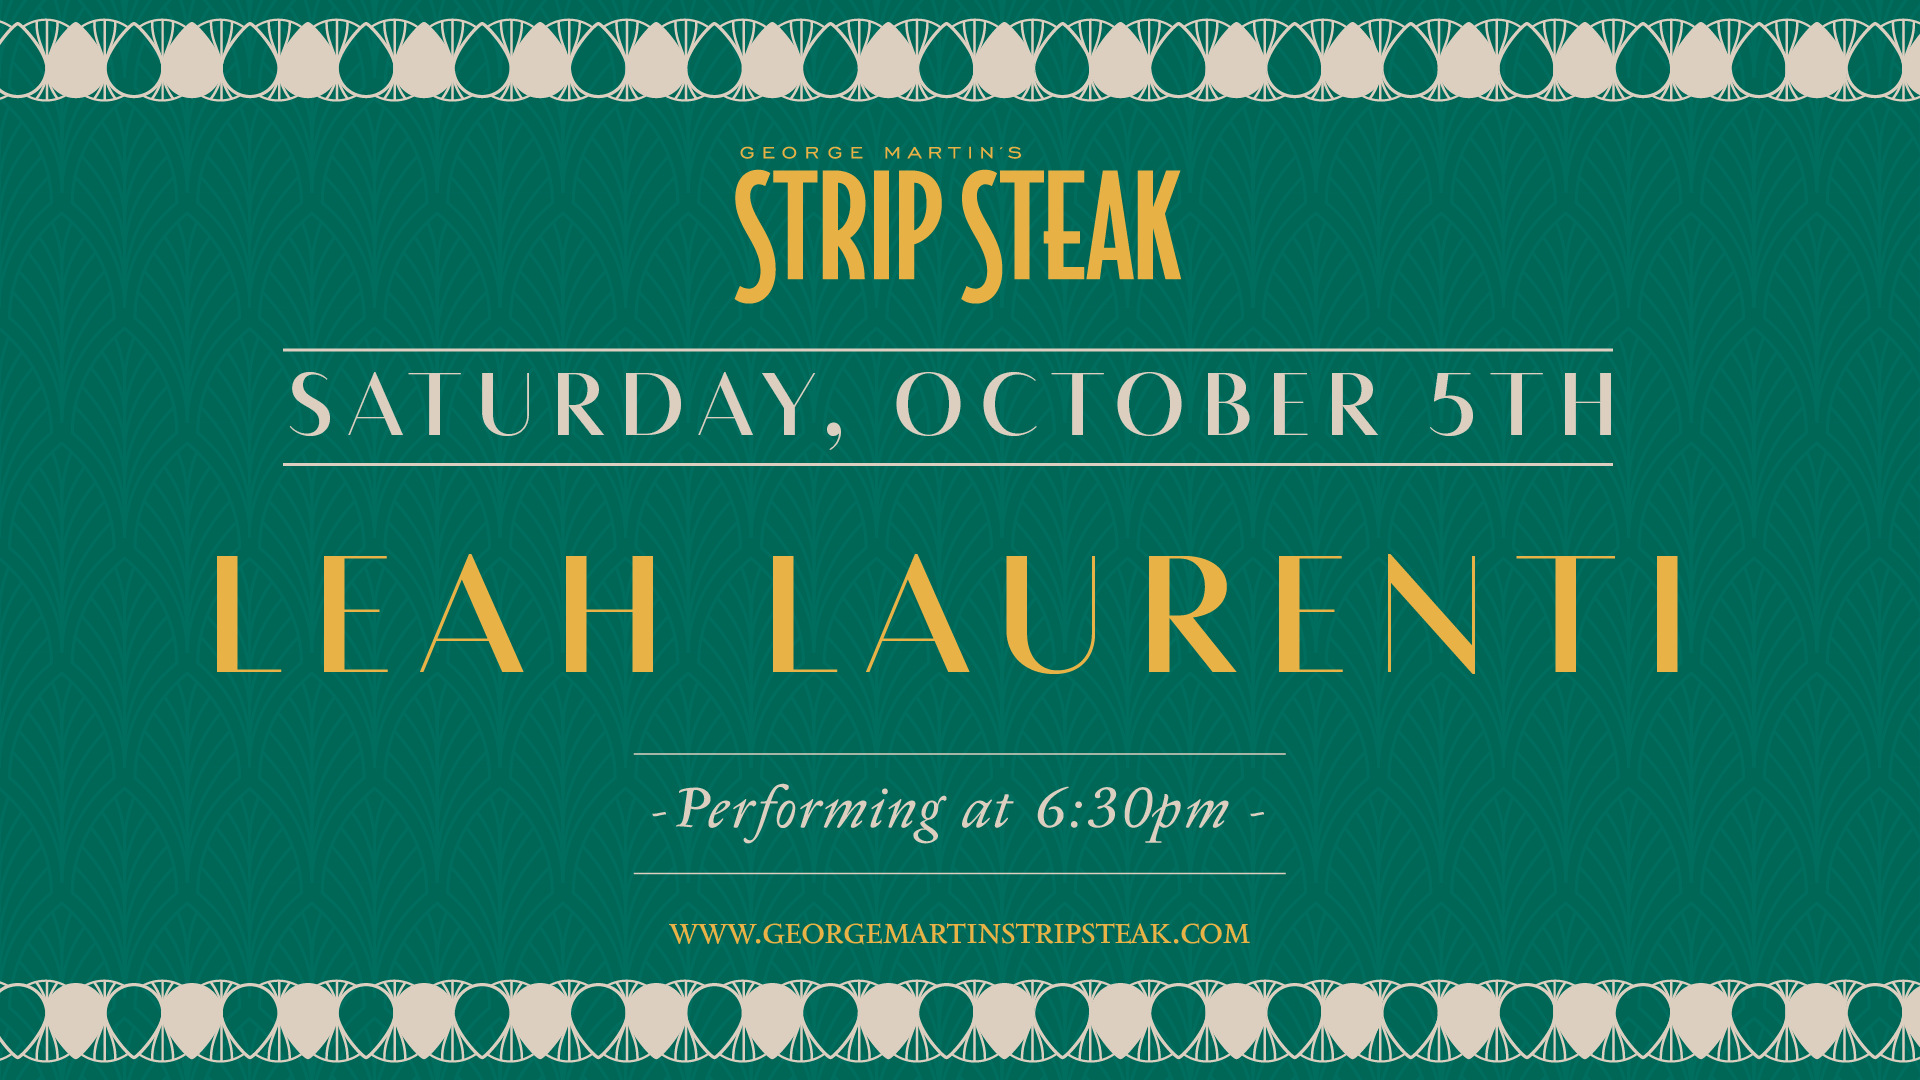 Flyer for Live Music with Leah Laurenti at Strip Steak on Saturday, October 5th at 6:30pm.